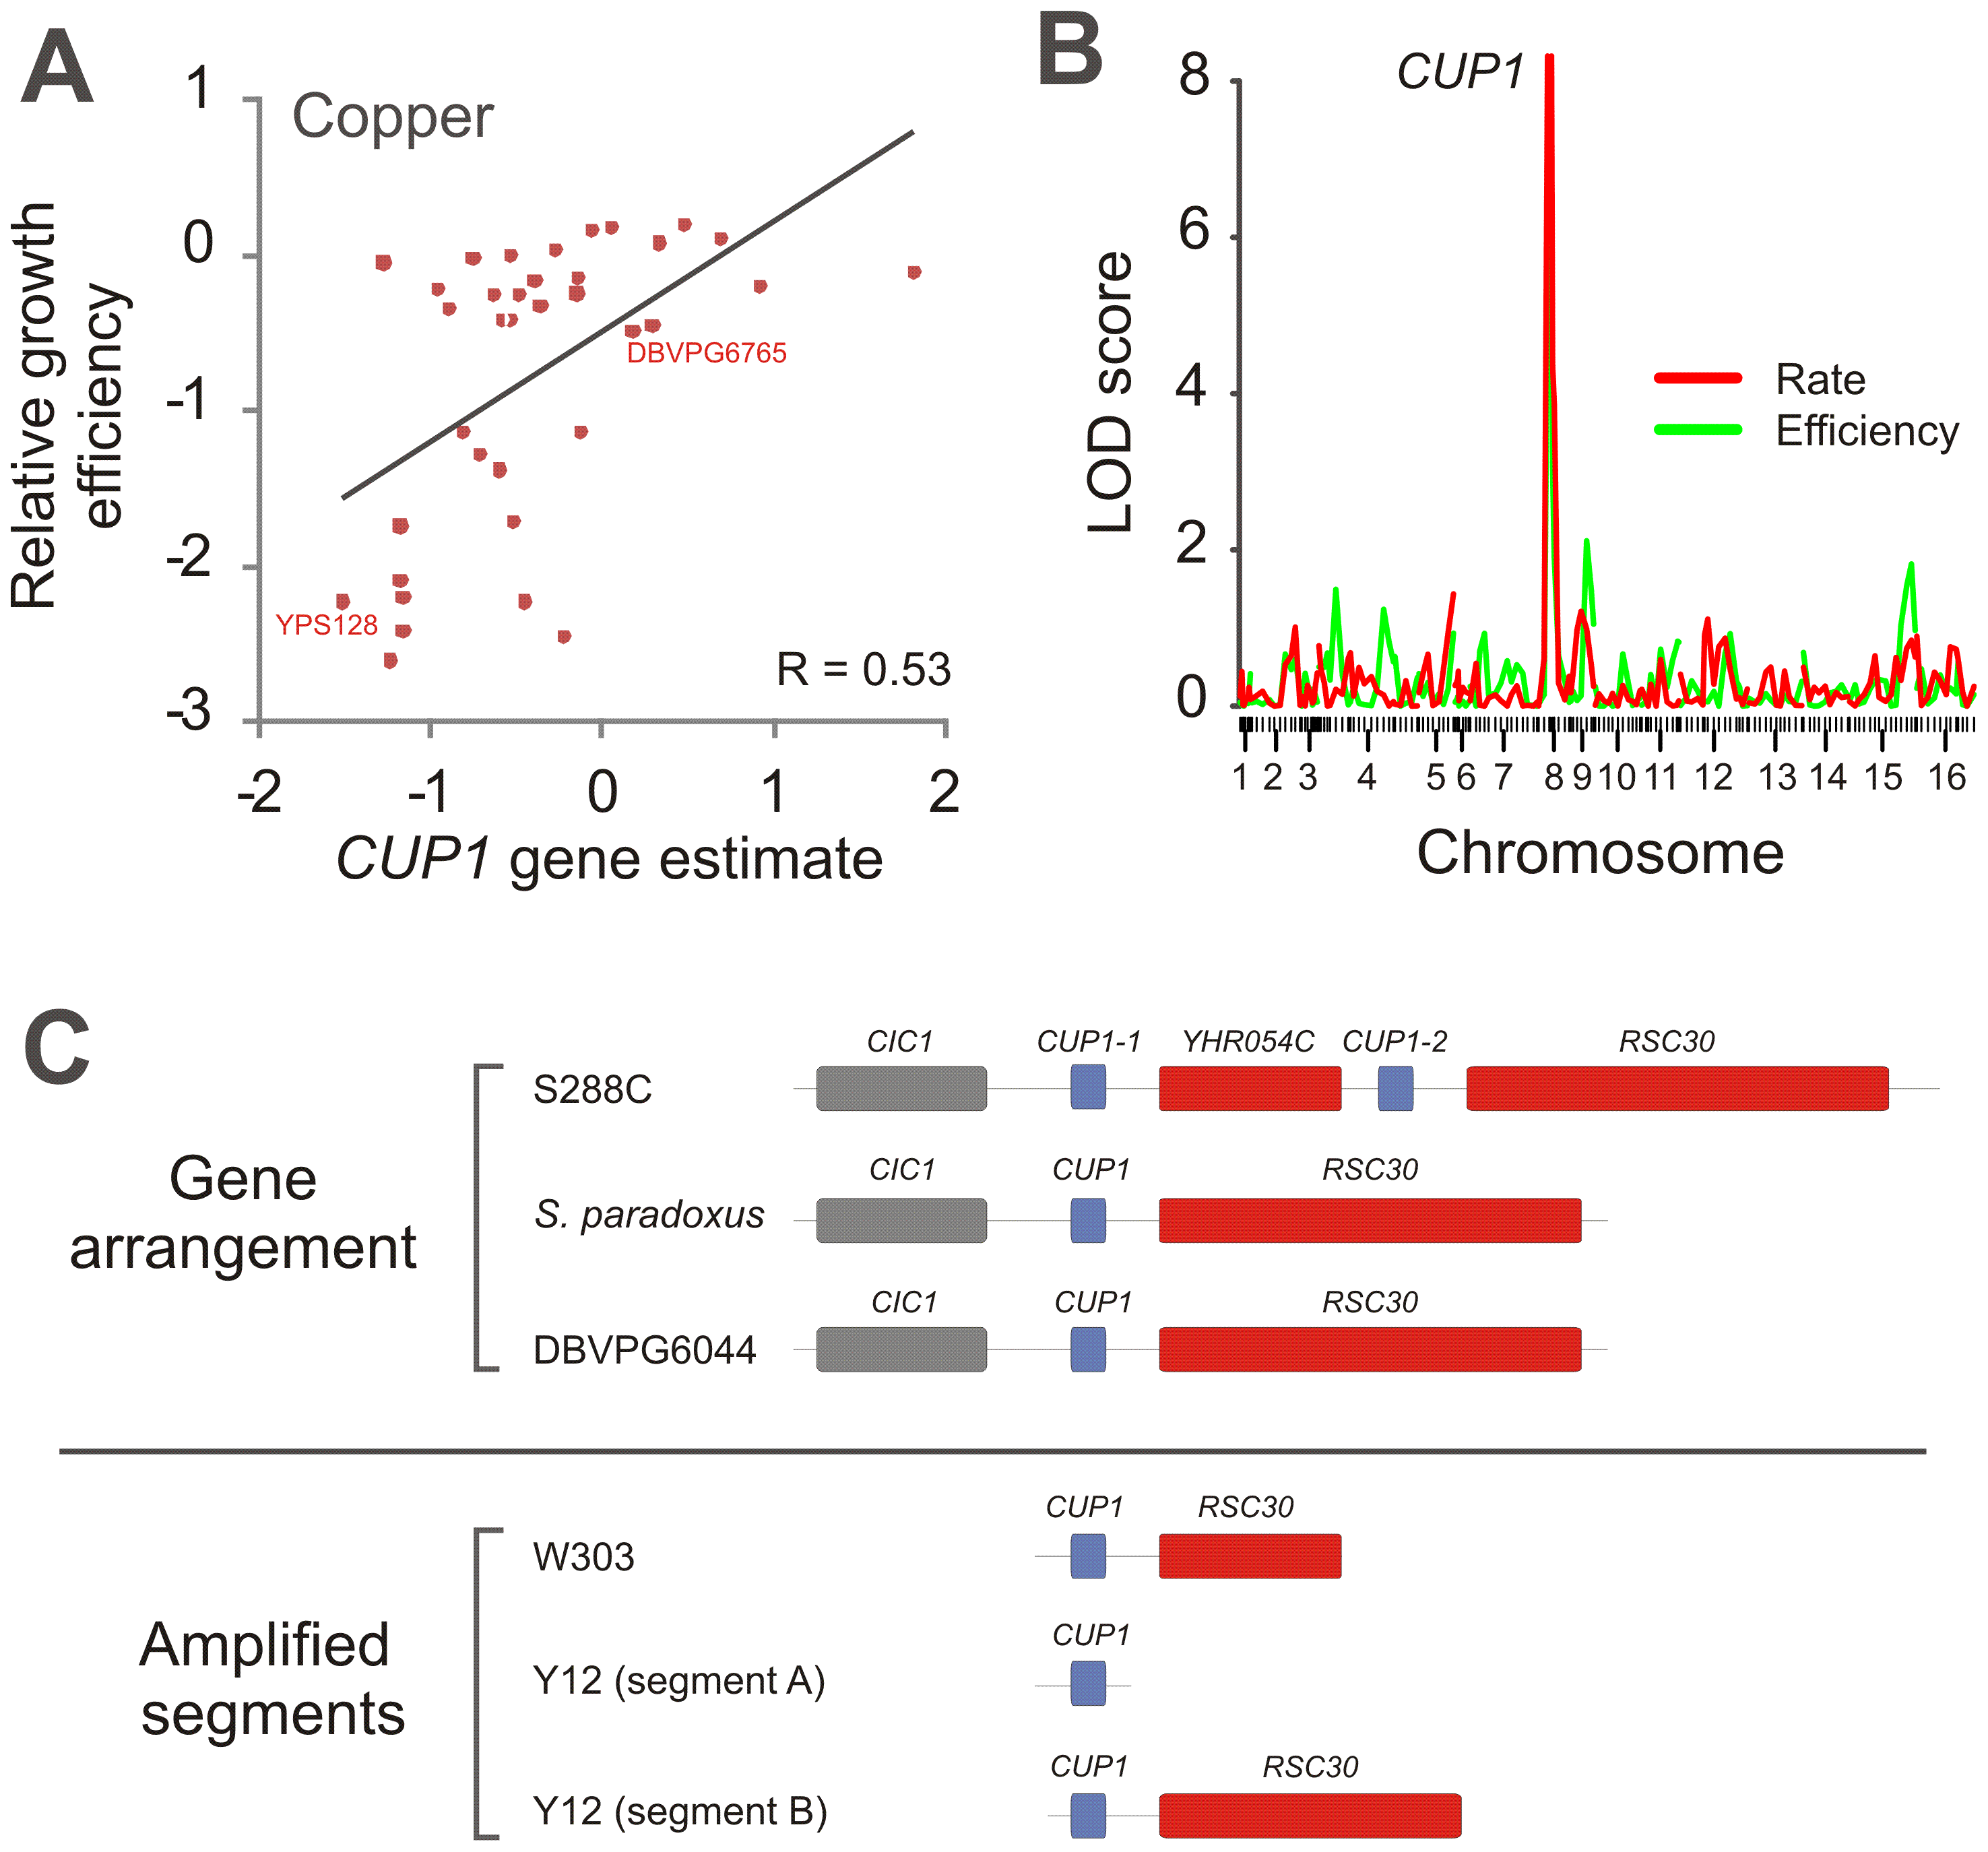 Parallel amplifications of <i>CUP1</i> in <i>S. cerevisiae</i> populations reflect convergent evolution for copper tolerance.